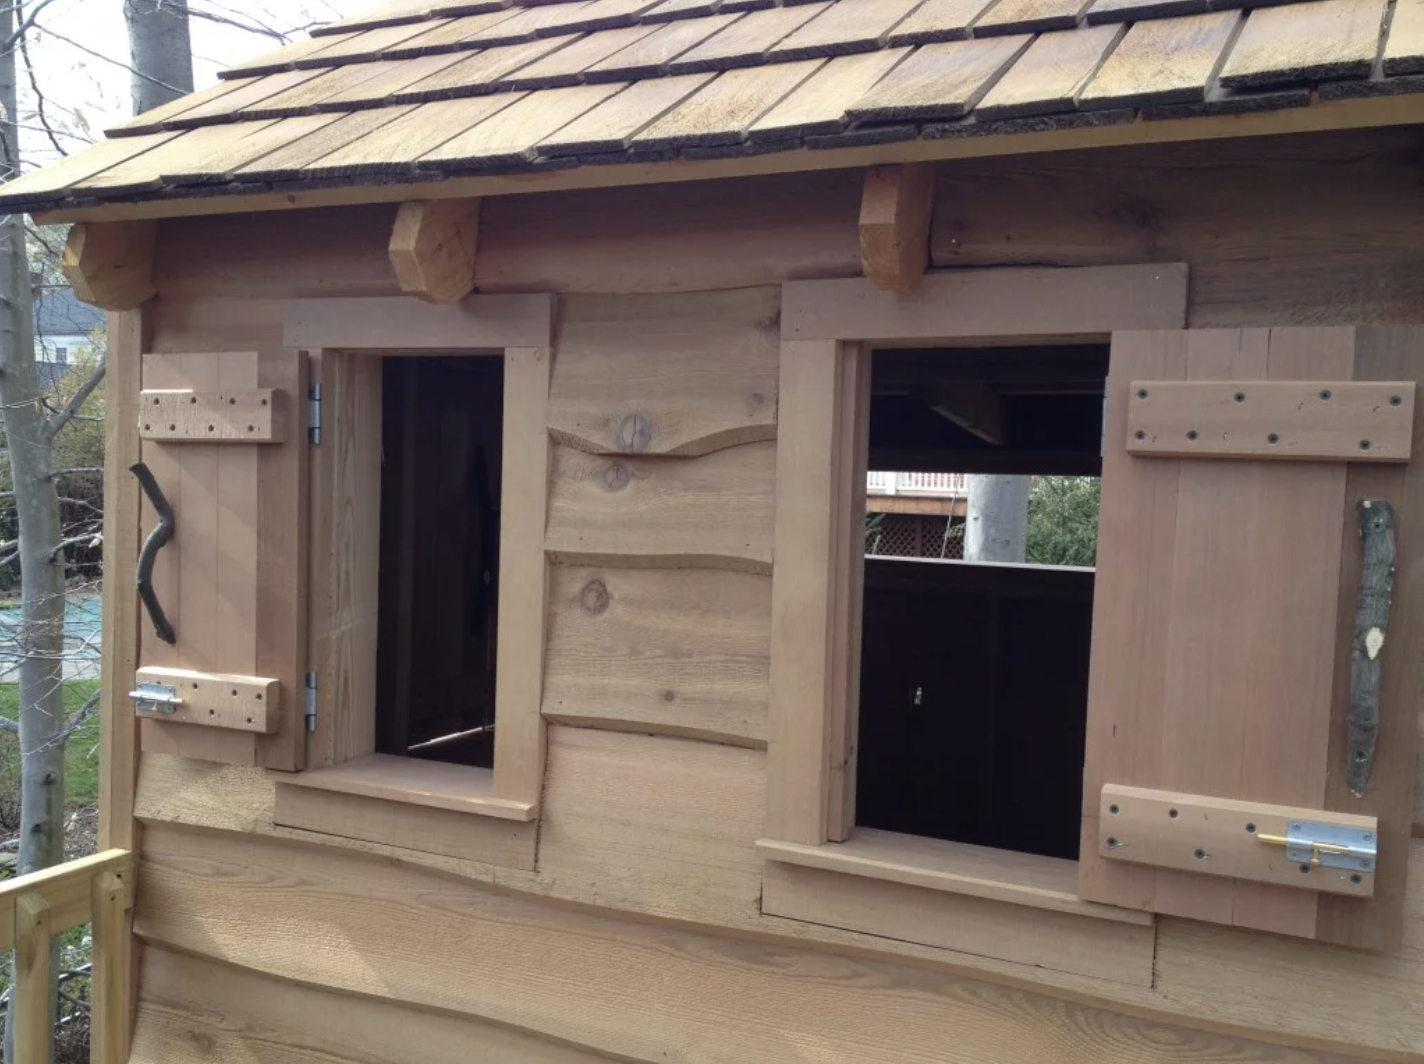 Lookout Windows with Working Shutters